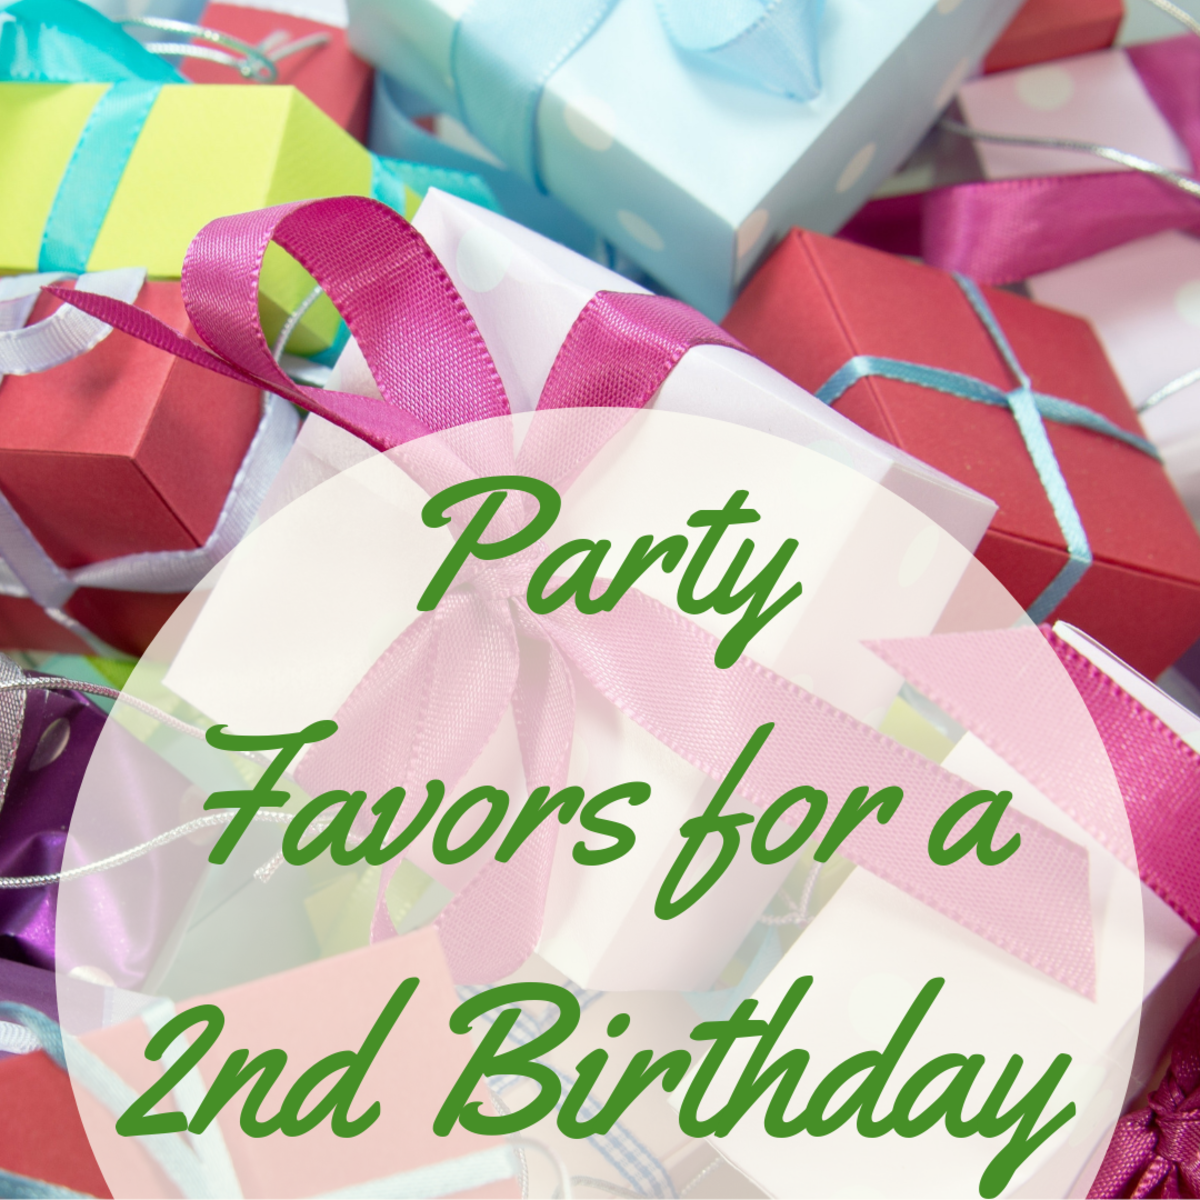 Party Favor Ideas for a Second Birthday Party